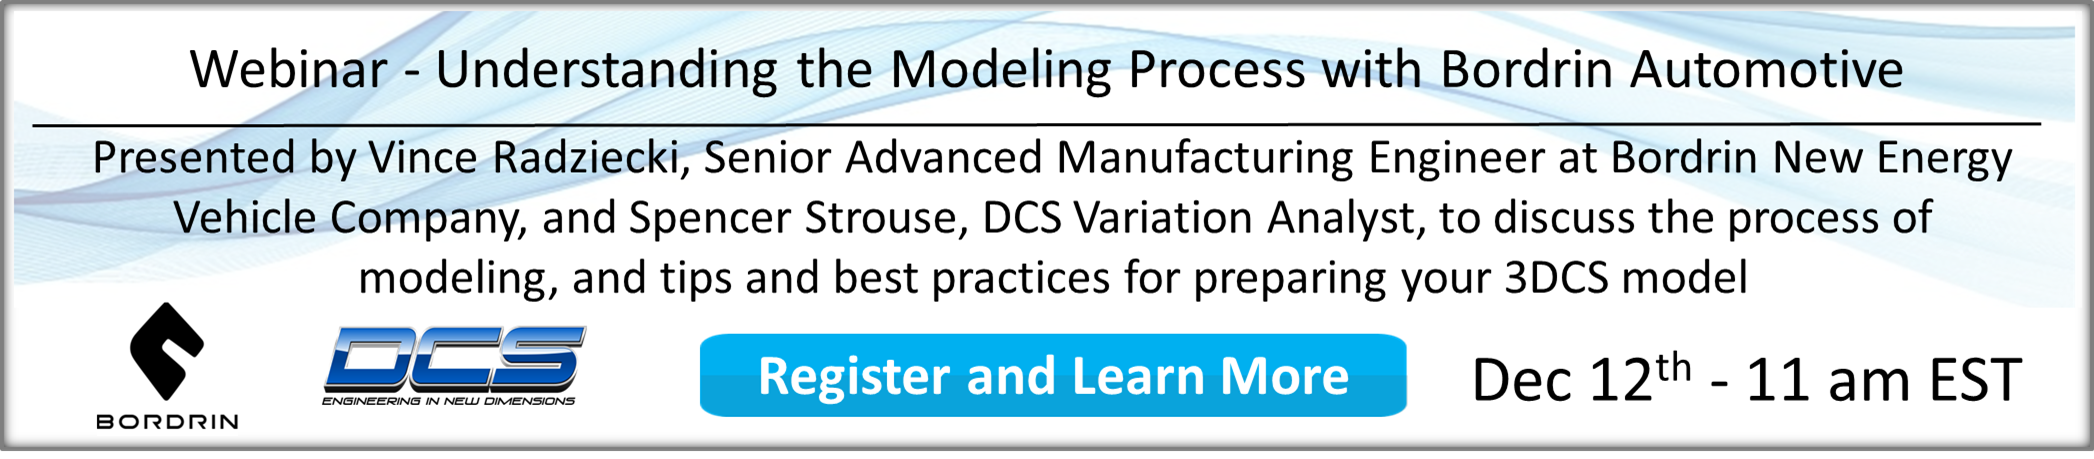 Webinar - The Modeling Process - Methods and Tips on Preparing and Creating 3DCS Models with Guest Bordrin Automotive